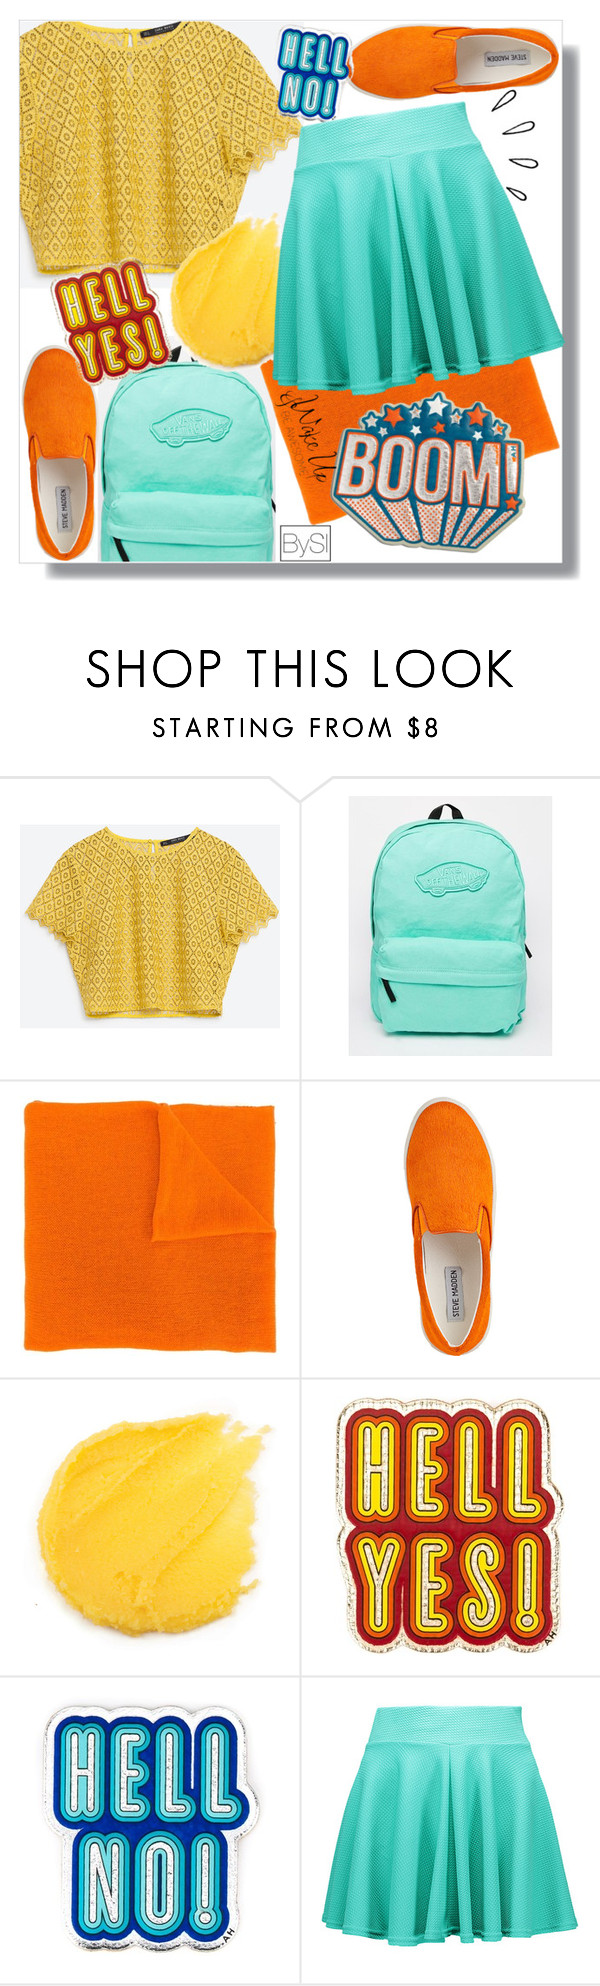 """""""Vibrant colors"""" by ivanova-sonya ❤ liked on Polyvore featuring Vans, LISKA, Steve Madden, Anya Hindmarch and Old Navy"""